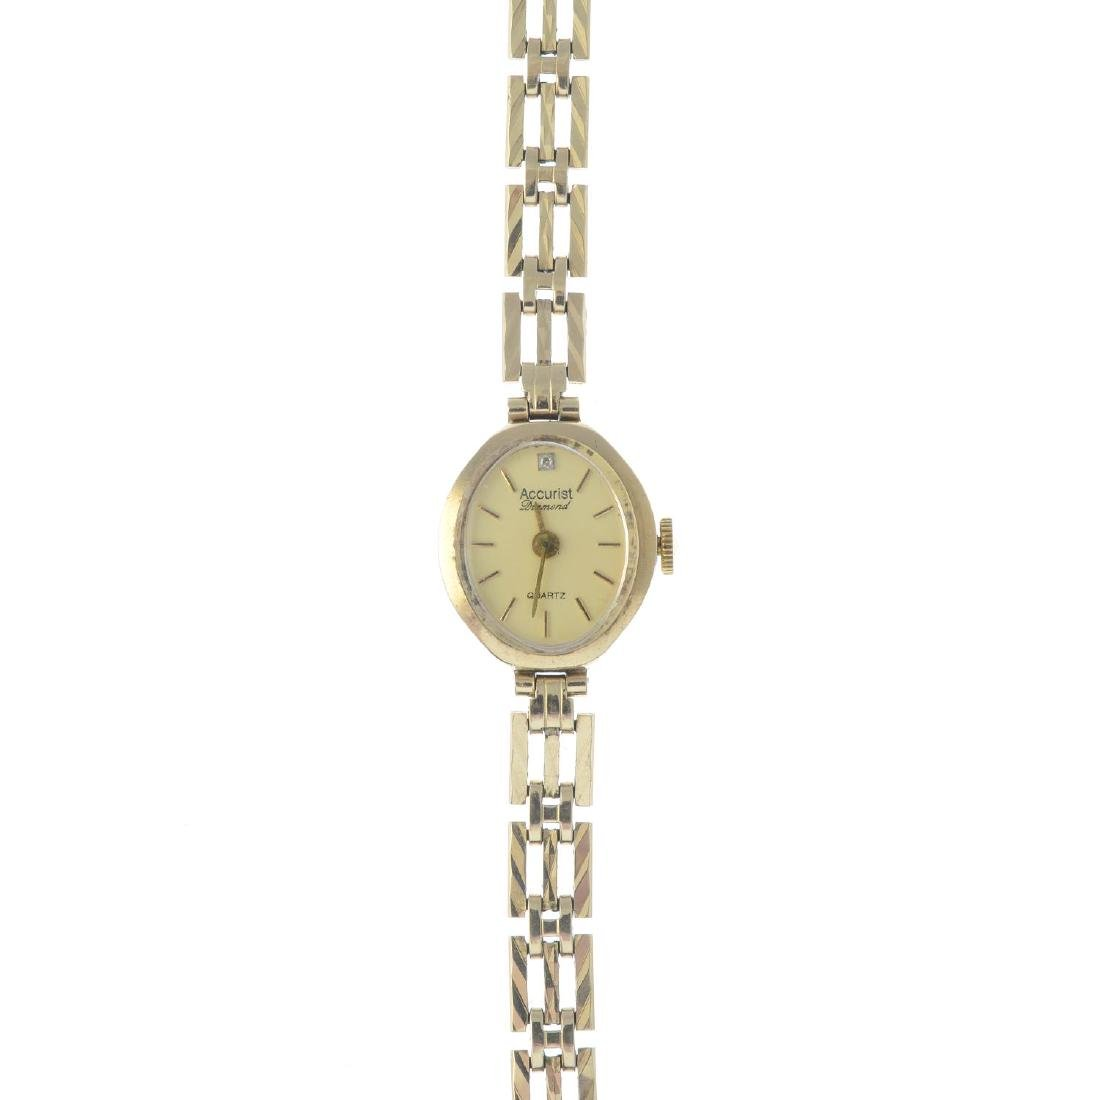 ACCURIST - a 9ct gold lady's bracelet watch. The oval